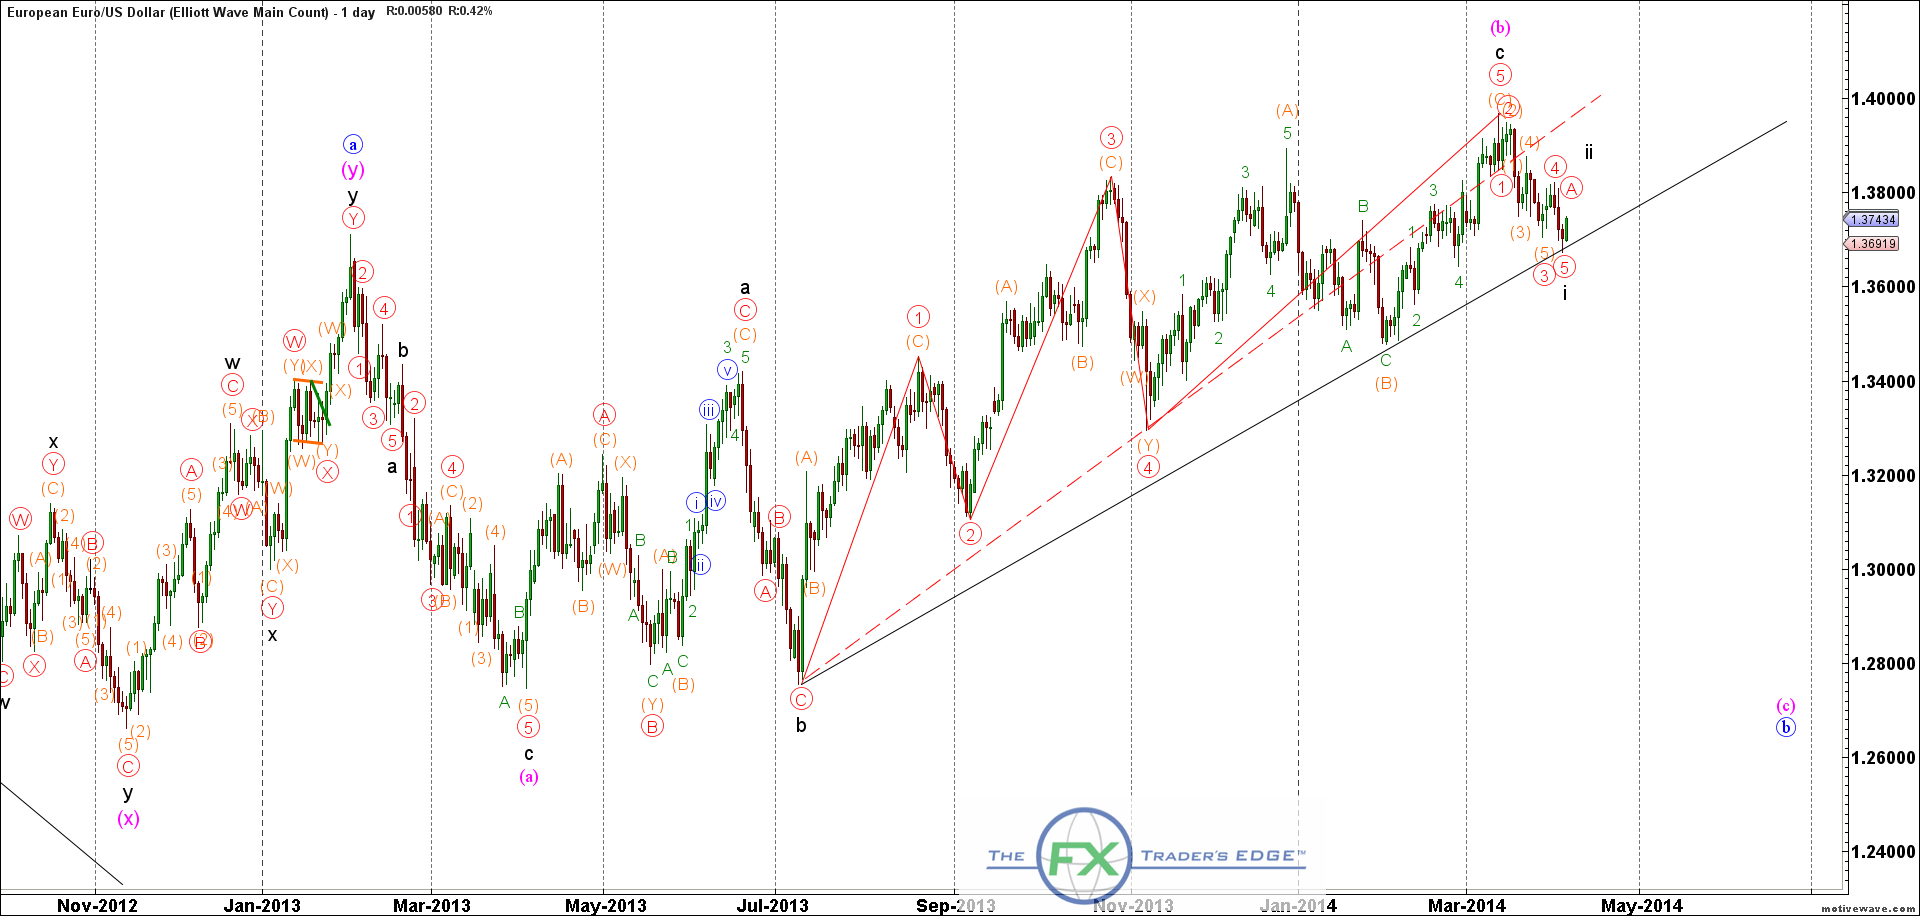 EURUSD-Elliott-Wave-Main-Count-Apr-07-1105-AM-1-day